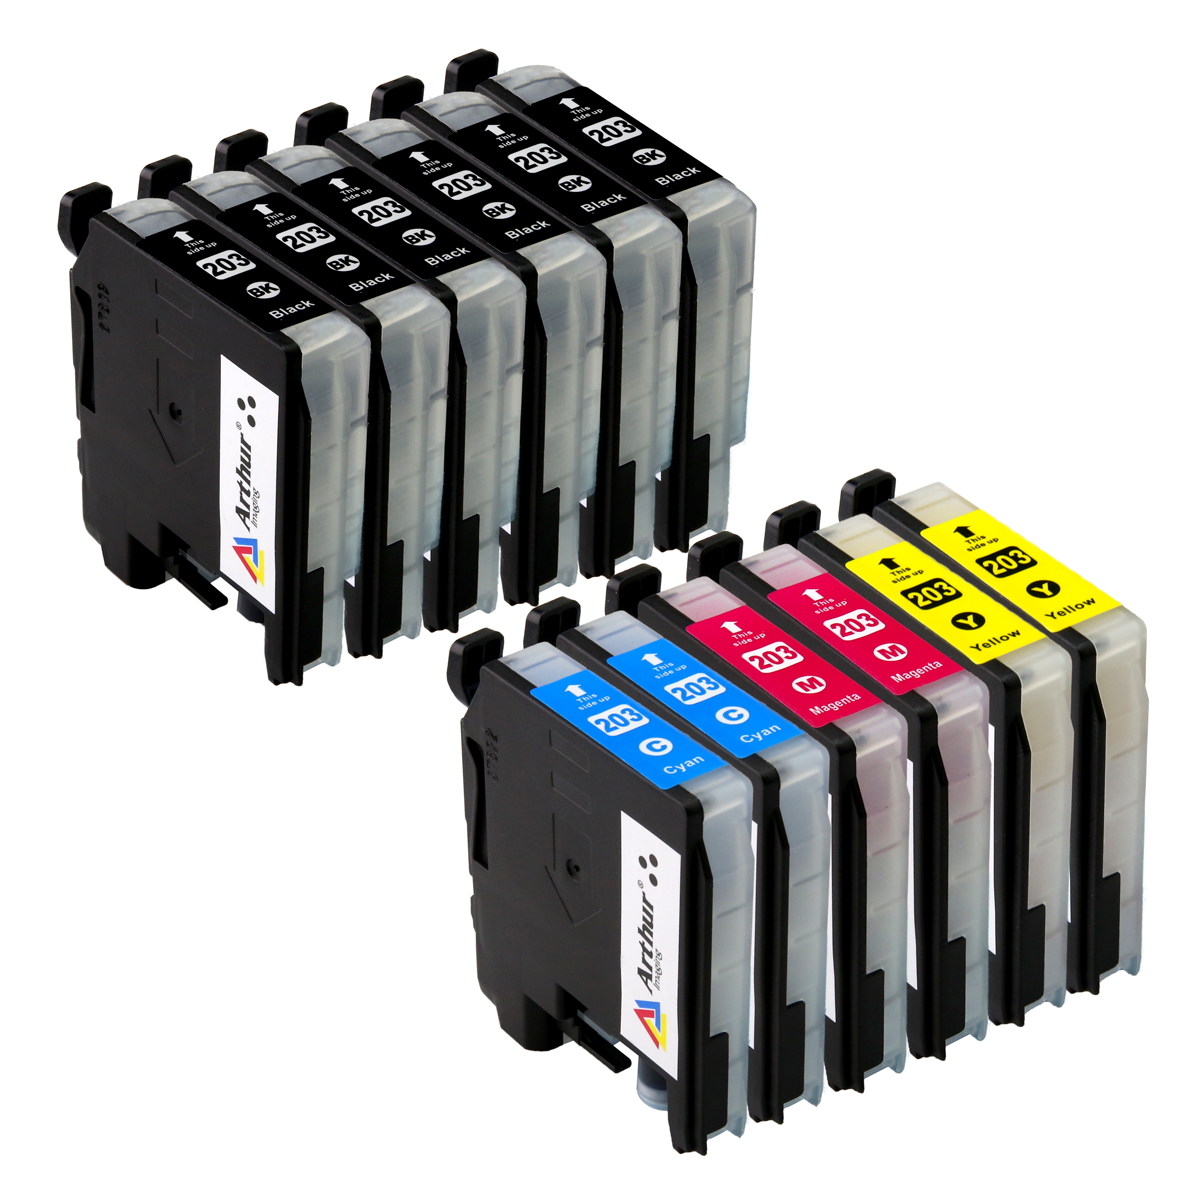 HP OfficeJet 5605 Ink Cartridges